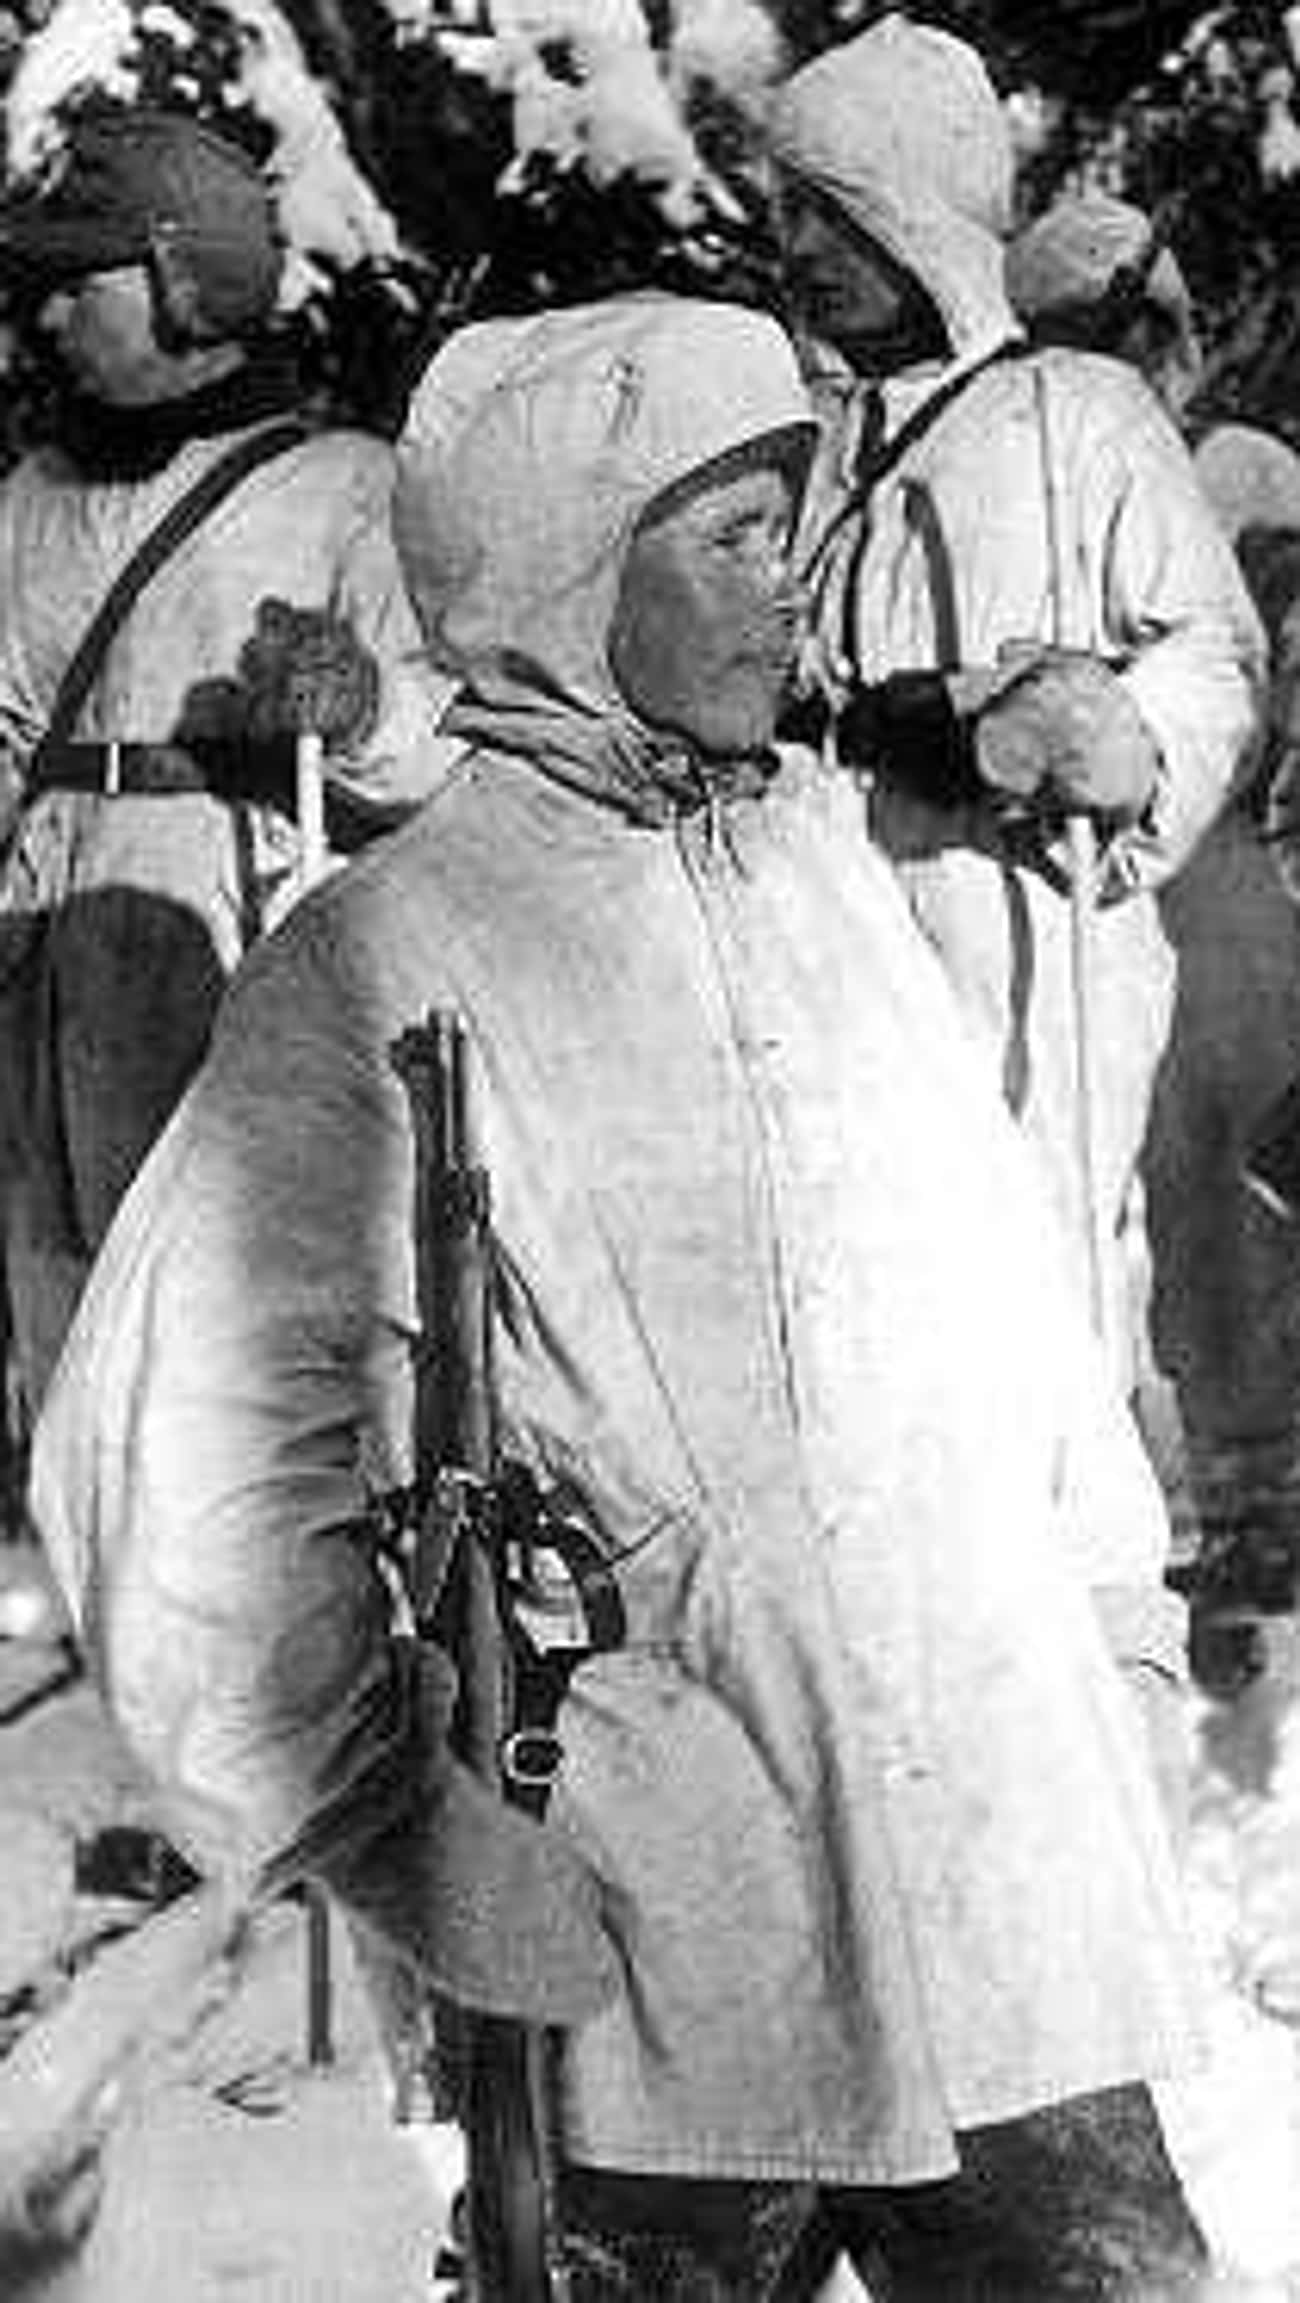 Simo Häyhä is listed (or ranked) 1 on the list The 30 Biggest Badasses In History